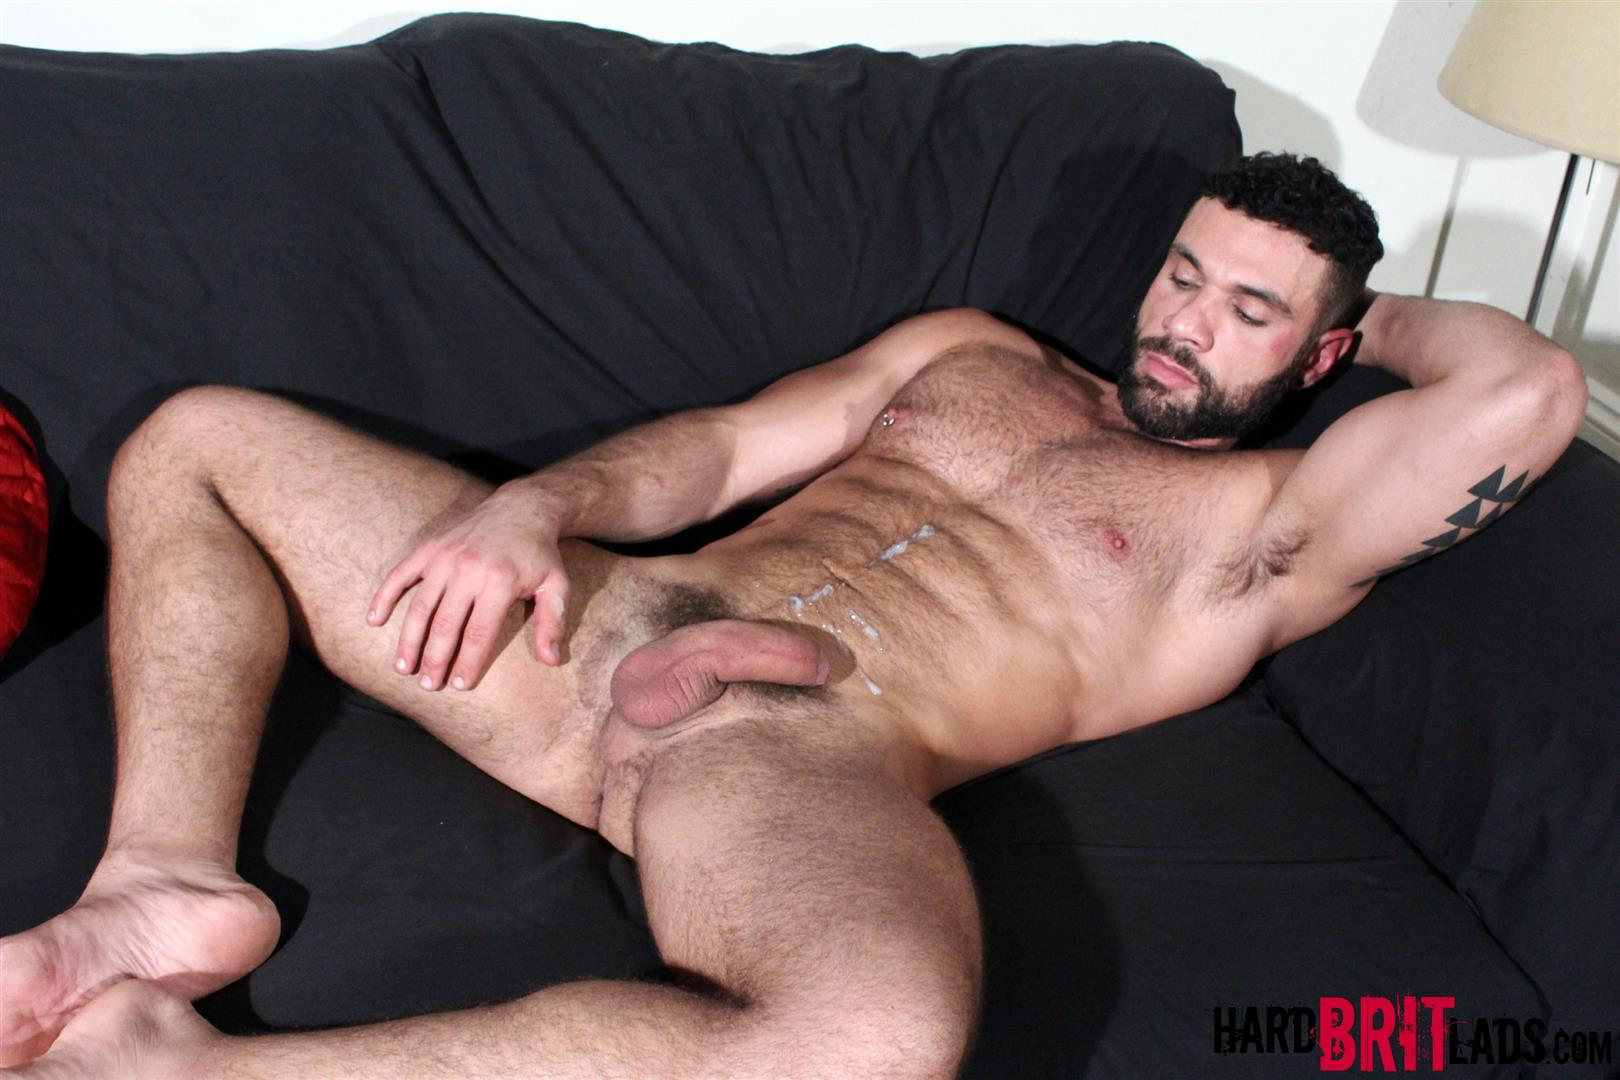 Hard Brit Lads Letterio Amadeo Hairy Rugby Player With A Big uncut Cock Amateur Gay Porn 18 Beefy Hairy Muscle Rugby Player Playing With His Big Uncut Cock